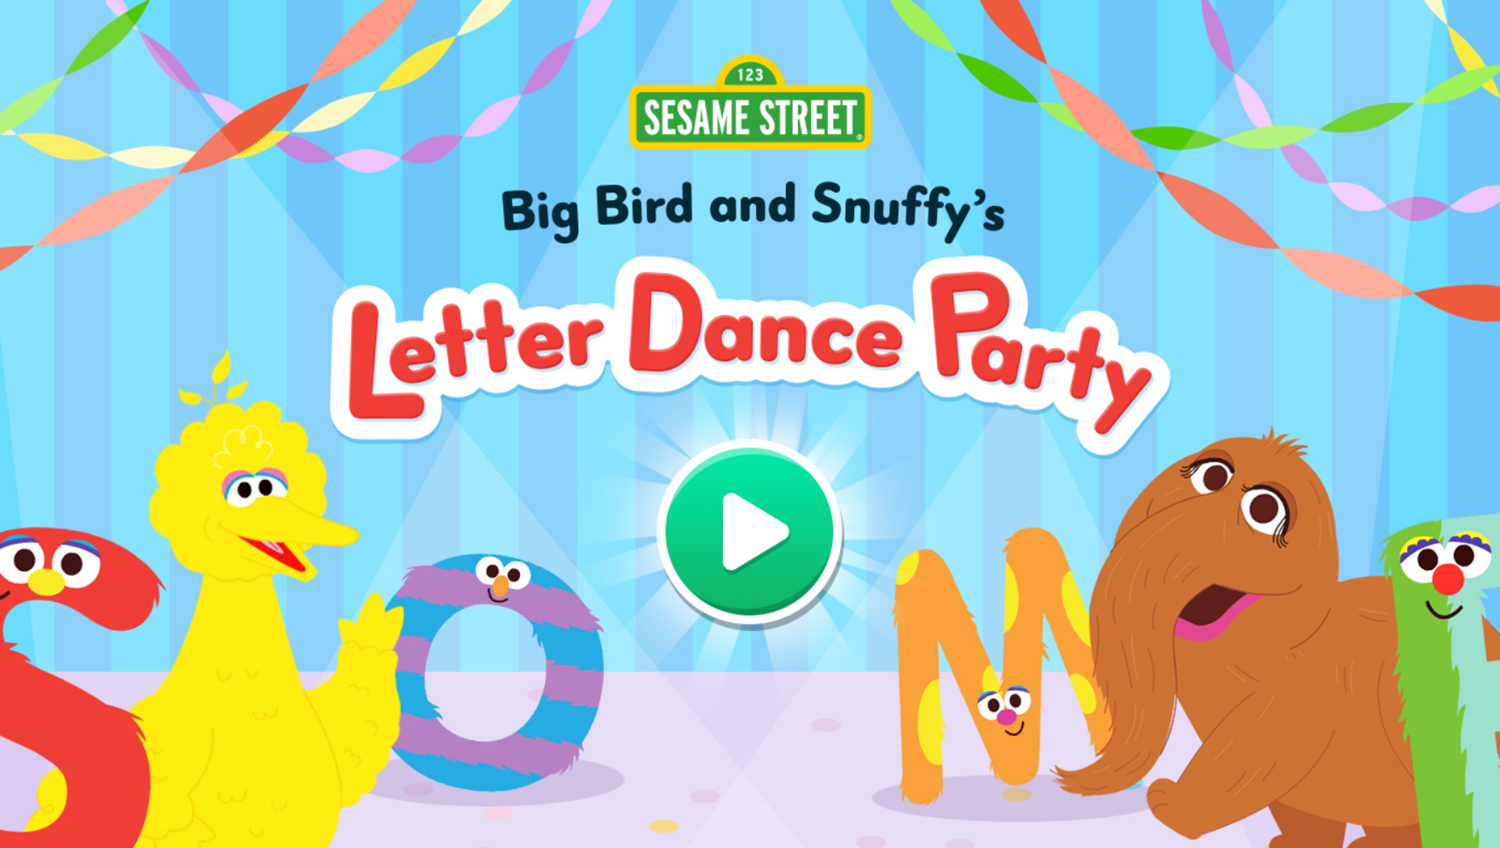 Sesame Street Big Bird and Snuffy's Letter Dance Party Game Welcome Screen Screenshot.